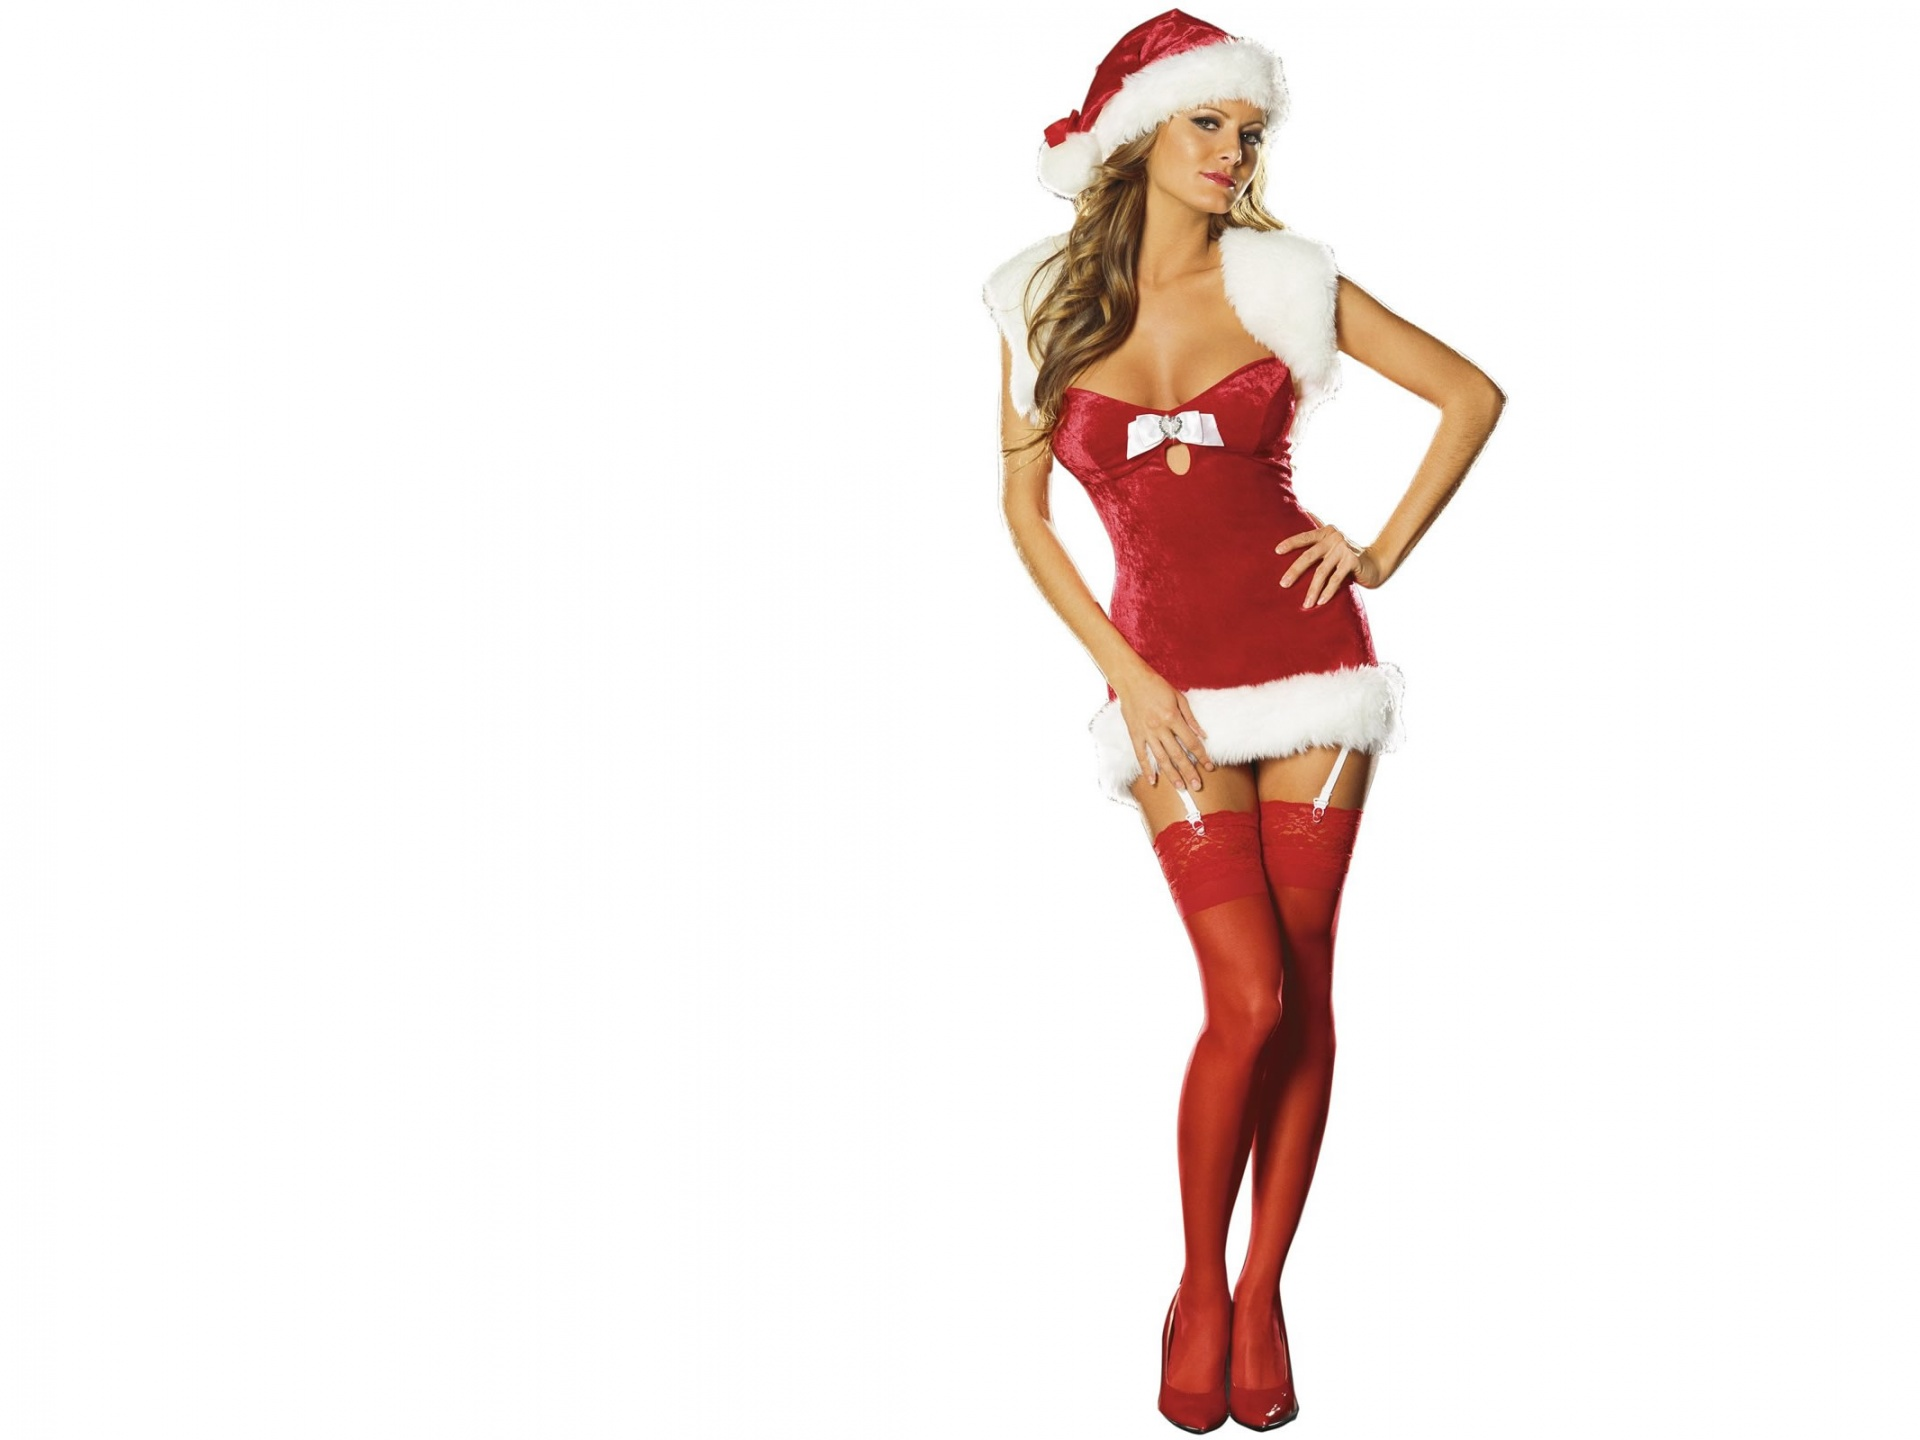 http://www.saversplanet.com/wallpapers/sexy-santa-babe-wallpapers_7769_1920x1440.jpg